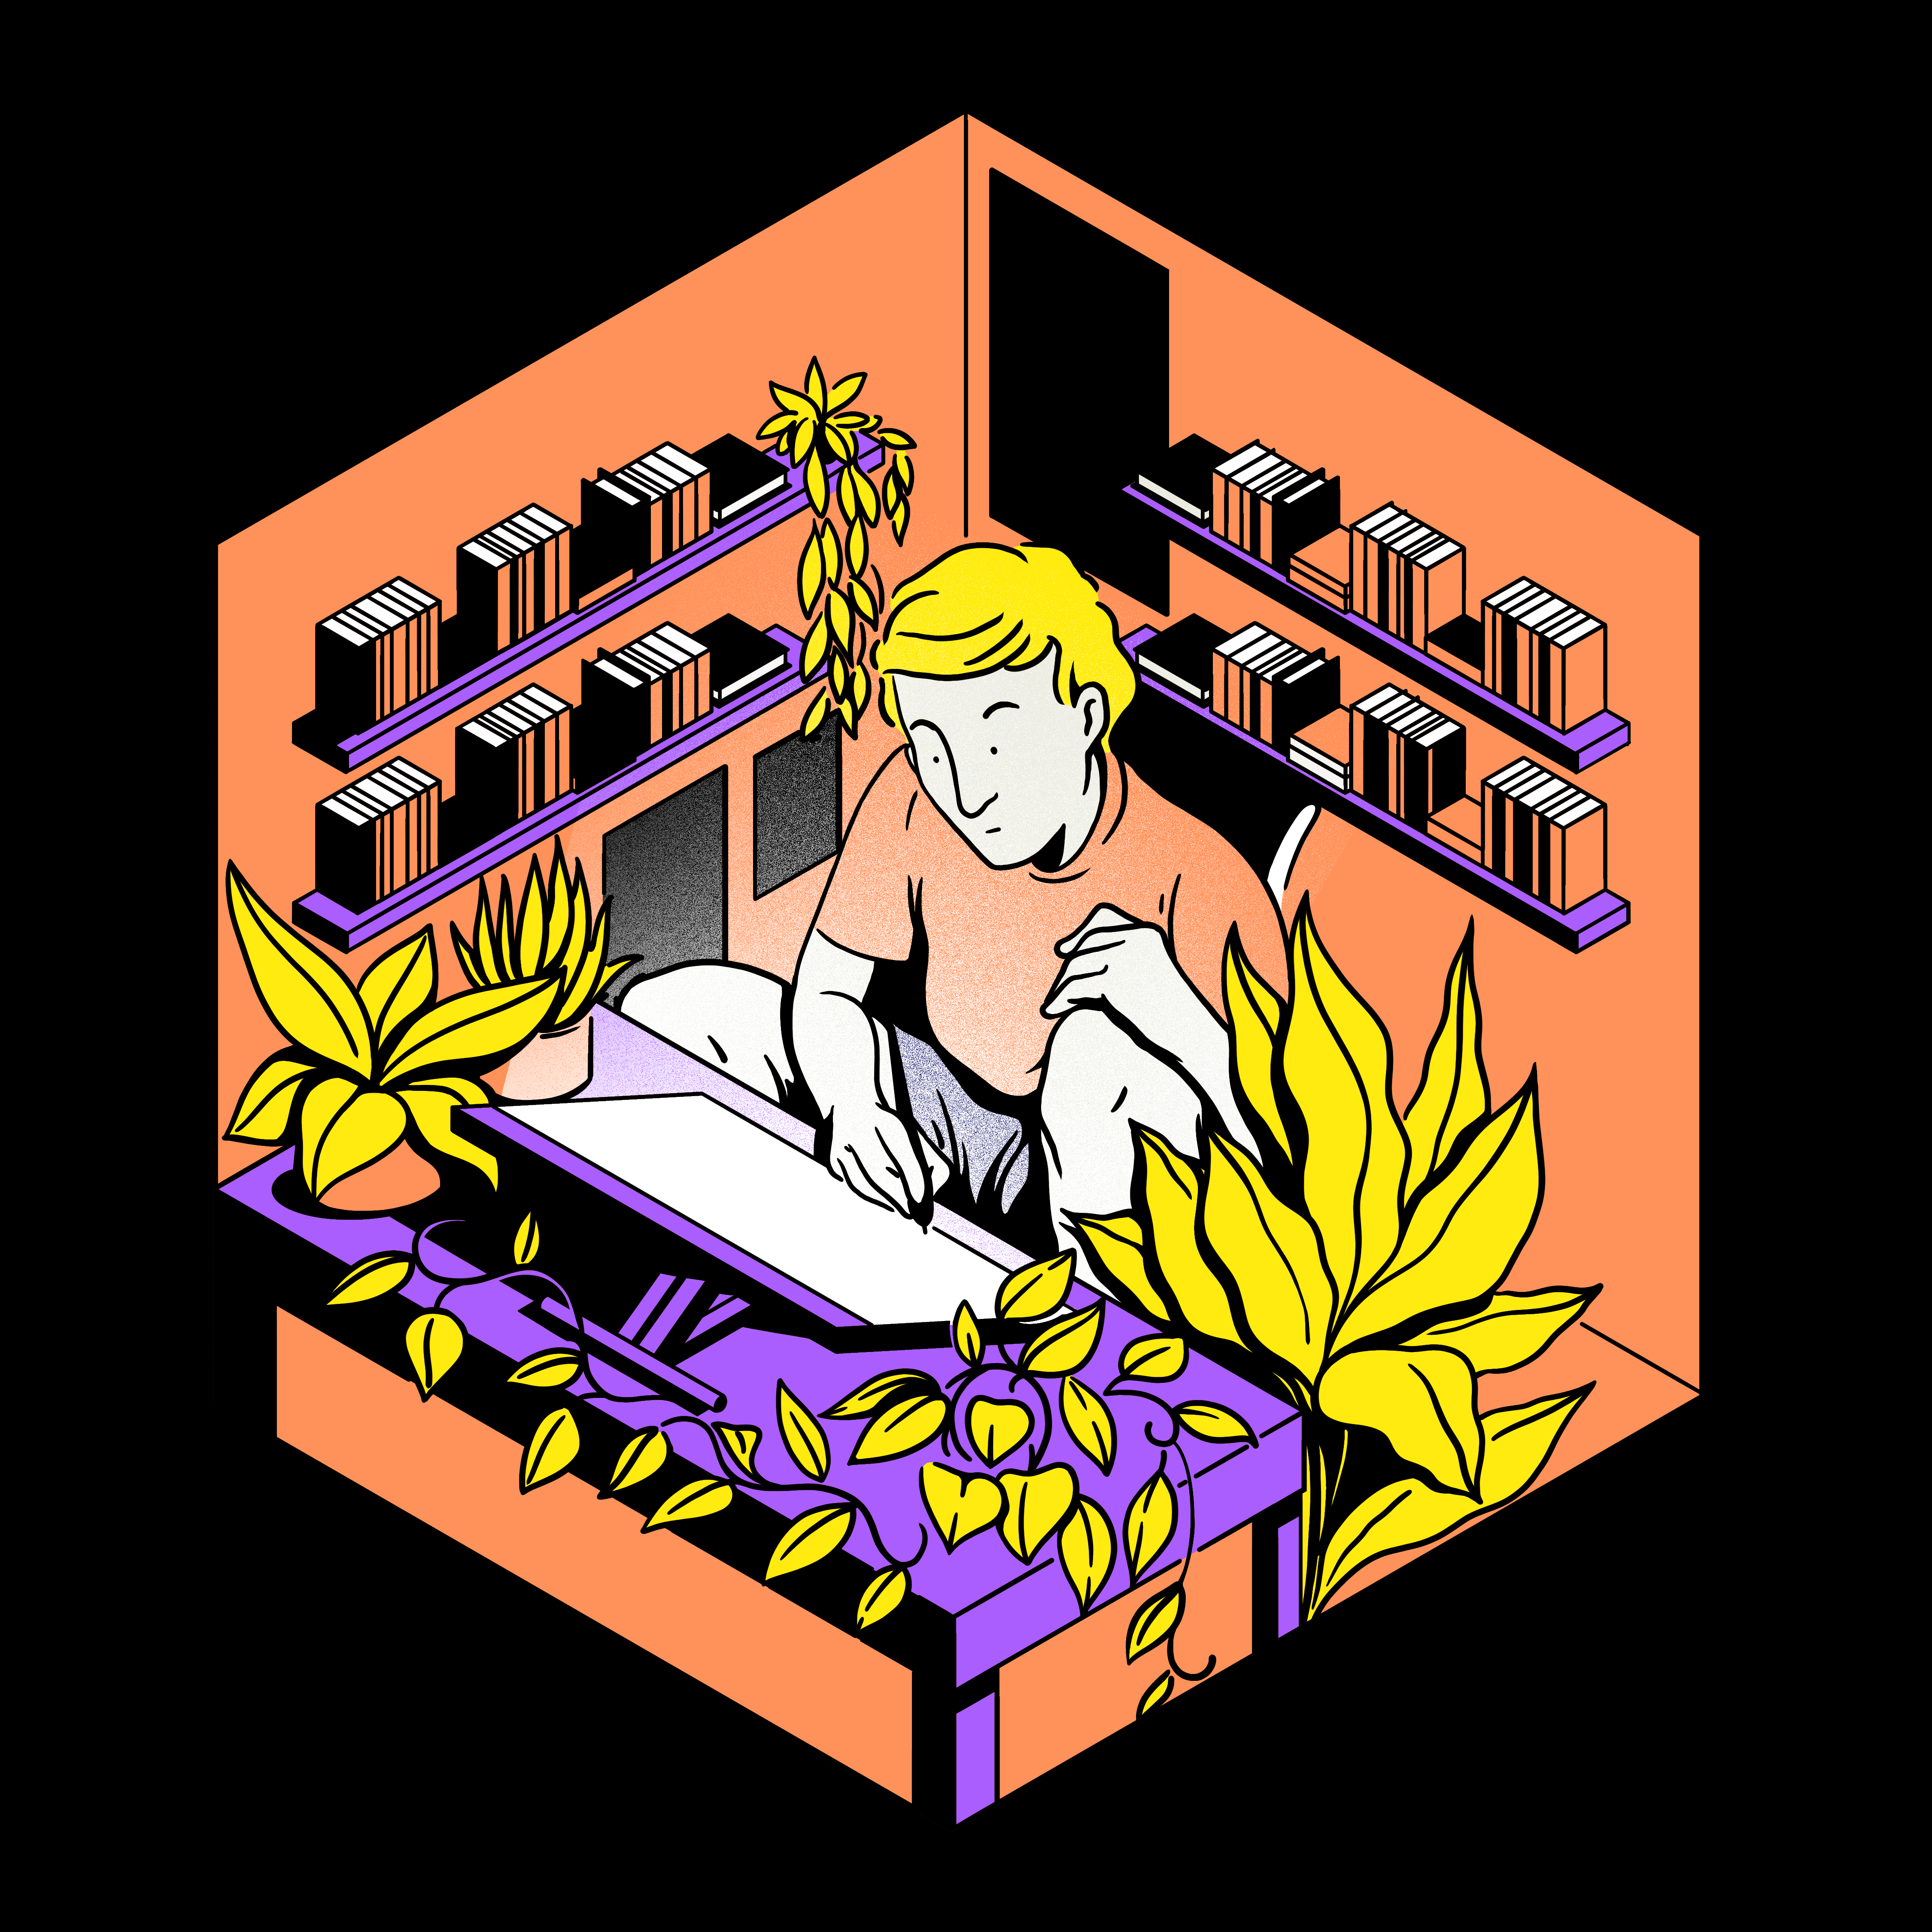 artistique_gustavo_magalhaes_covid19_home_quaratine_home_office_drawing_table_small_plants.png